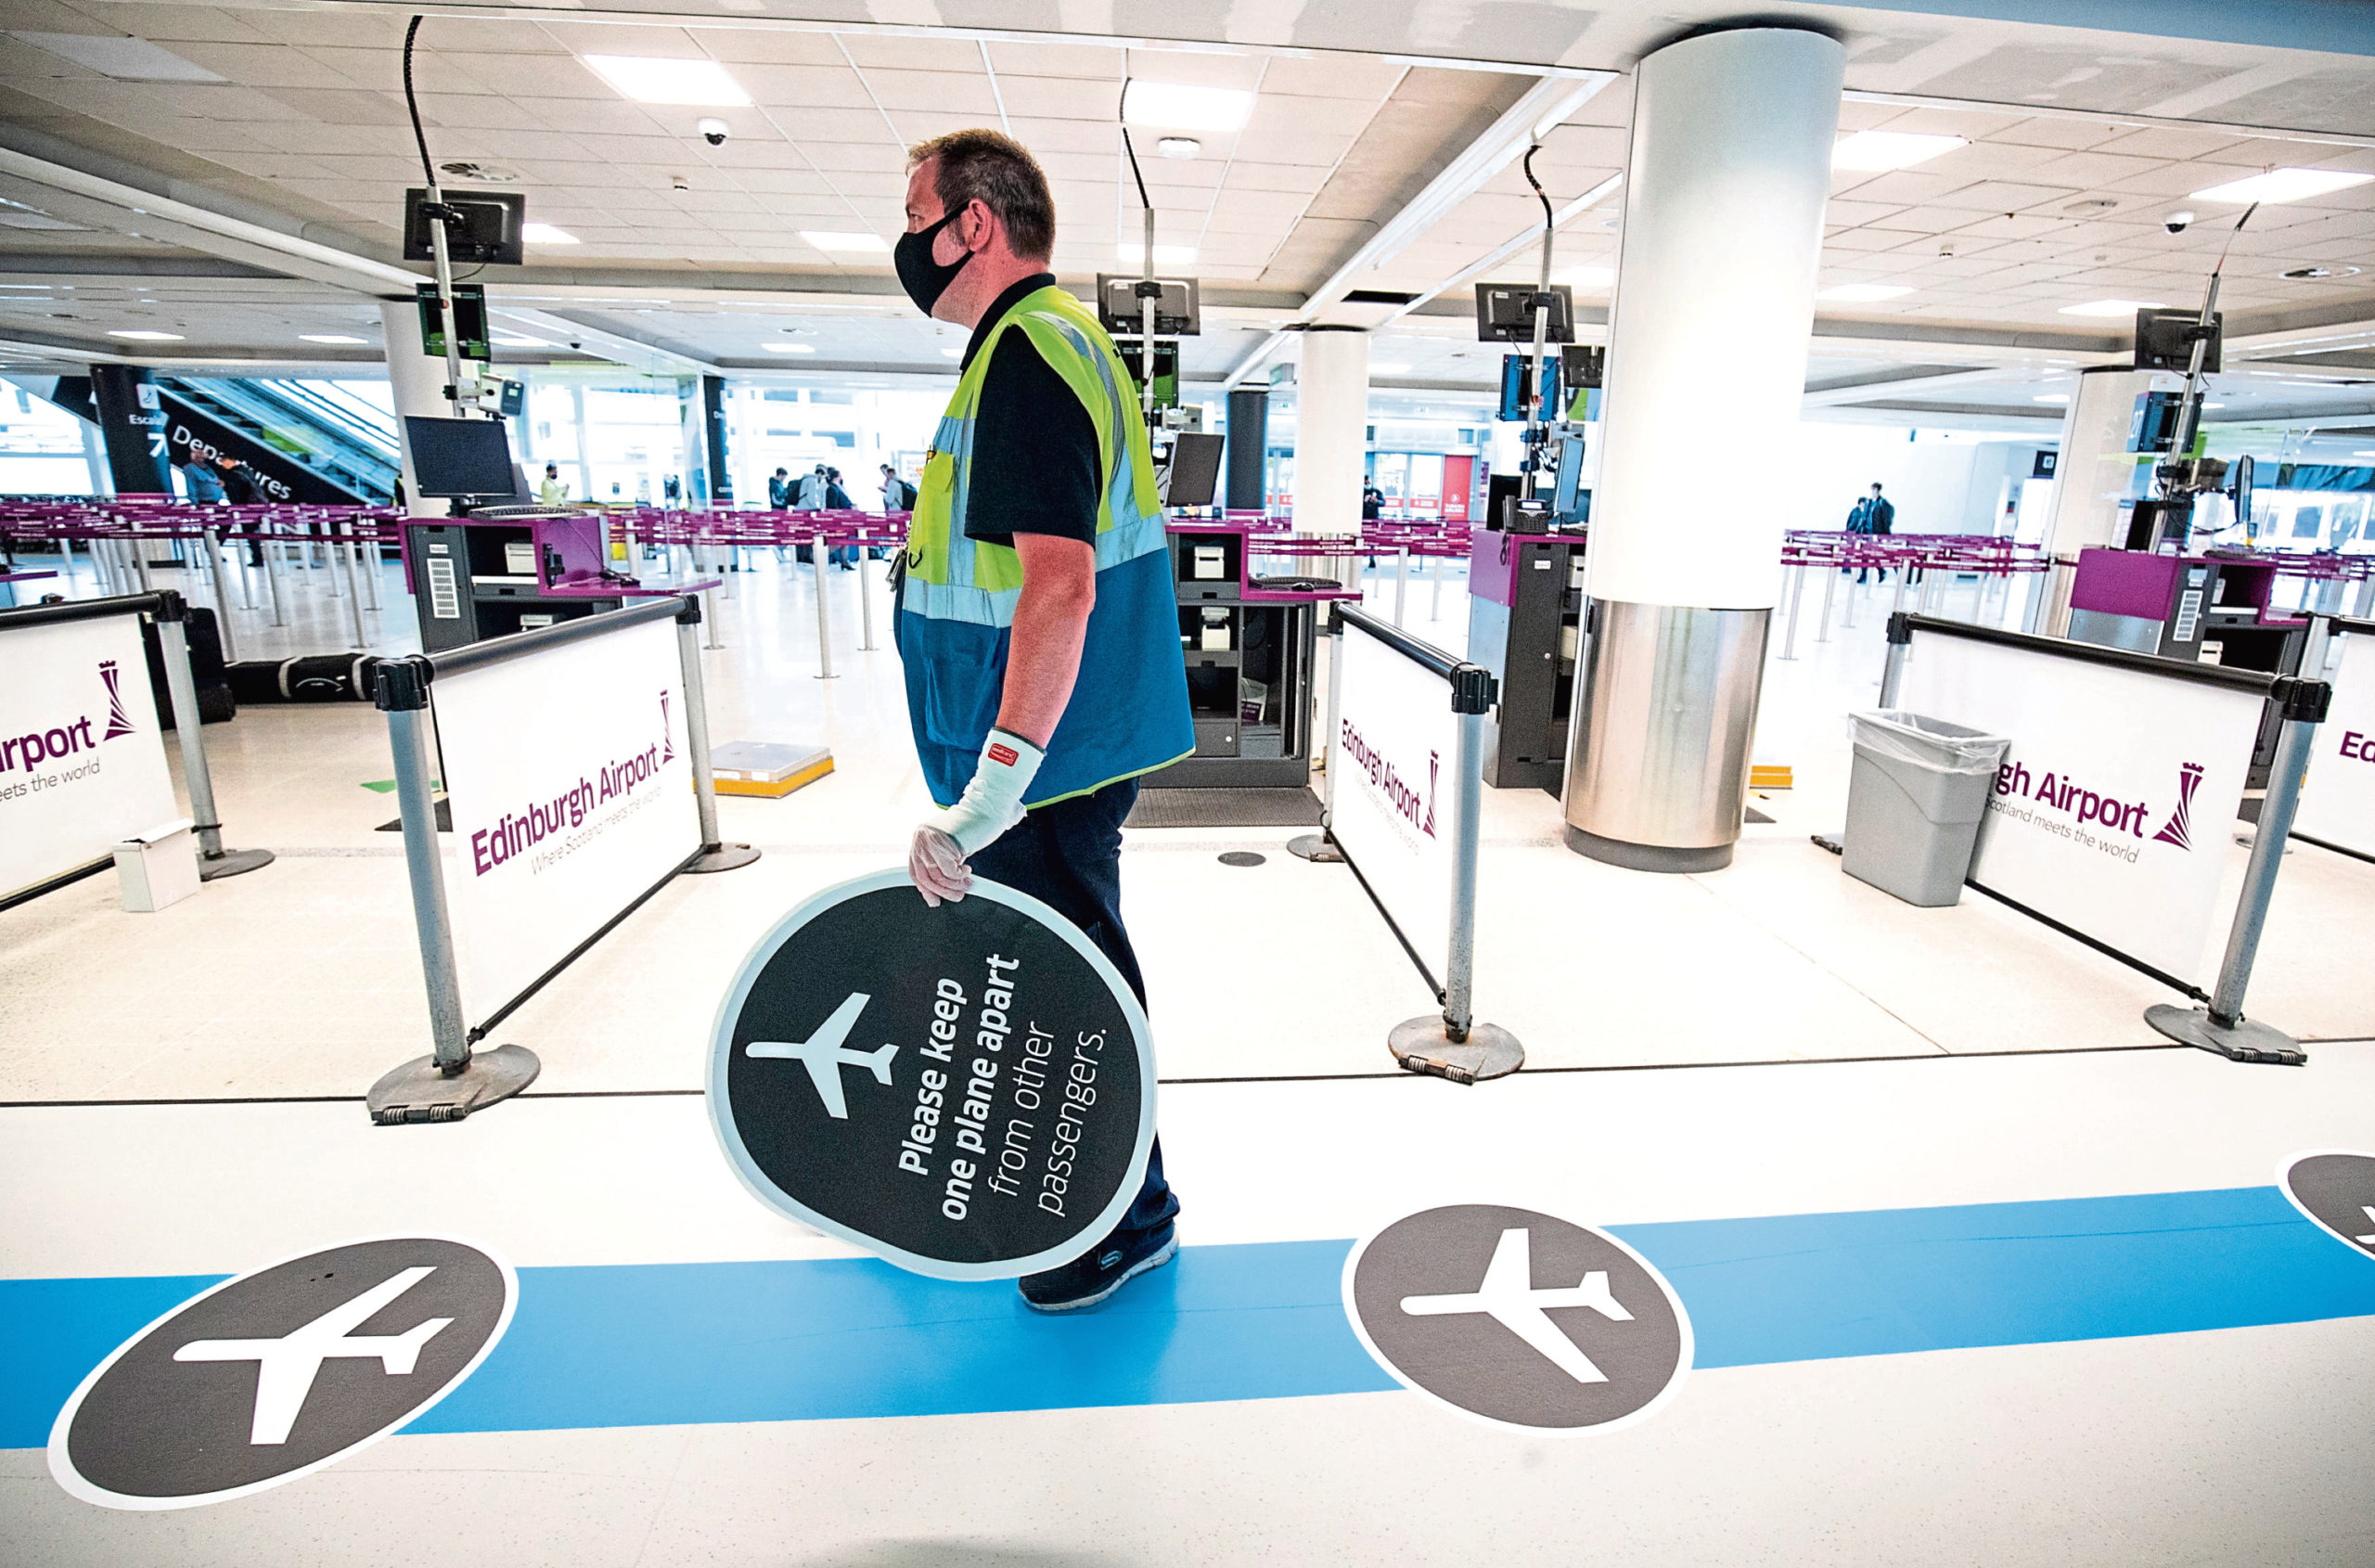 A one-way system has been put in place through Edinburgh Airport, one of the social distancing measures to help limit contact with airport staff and travellers.